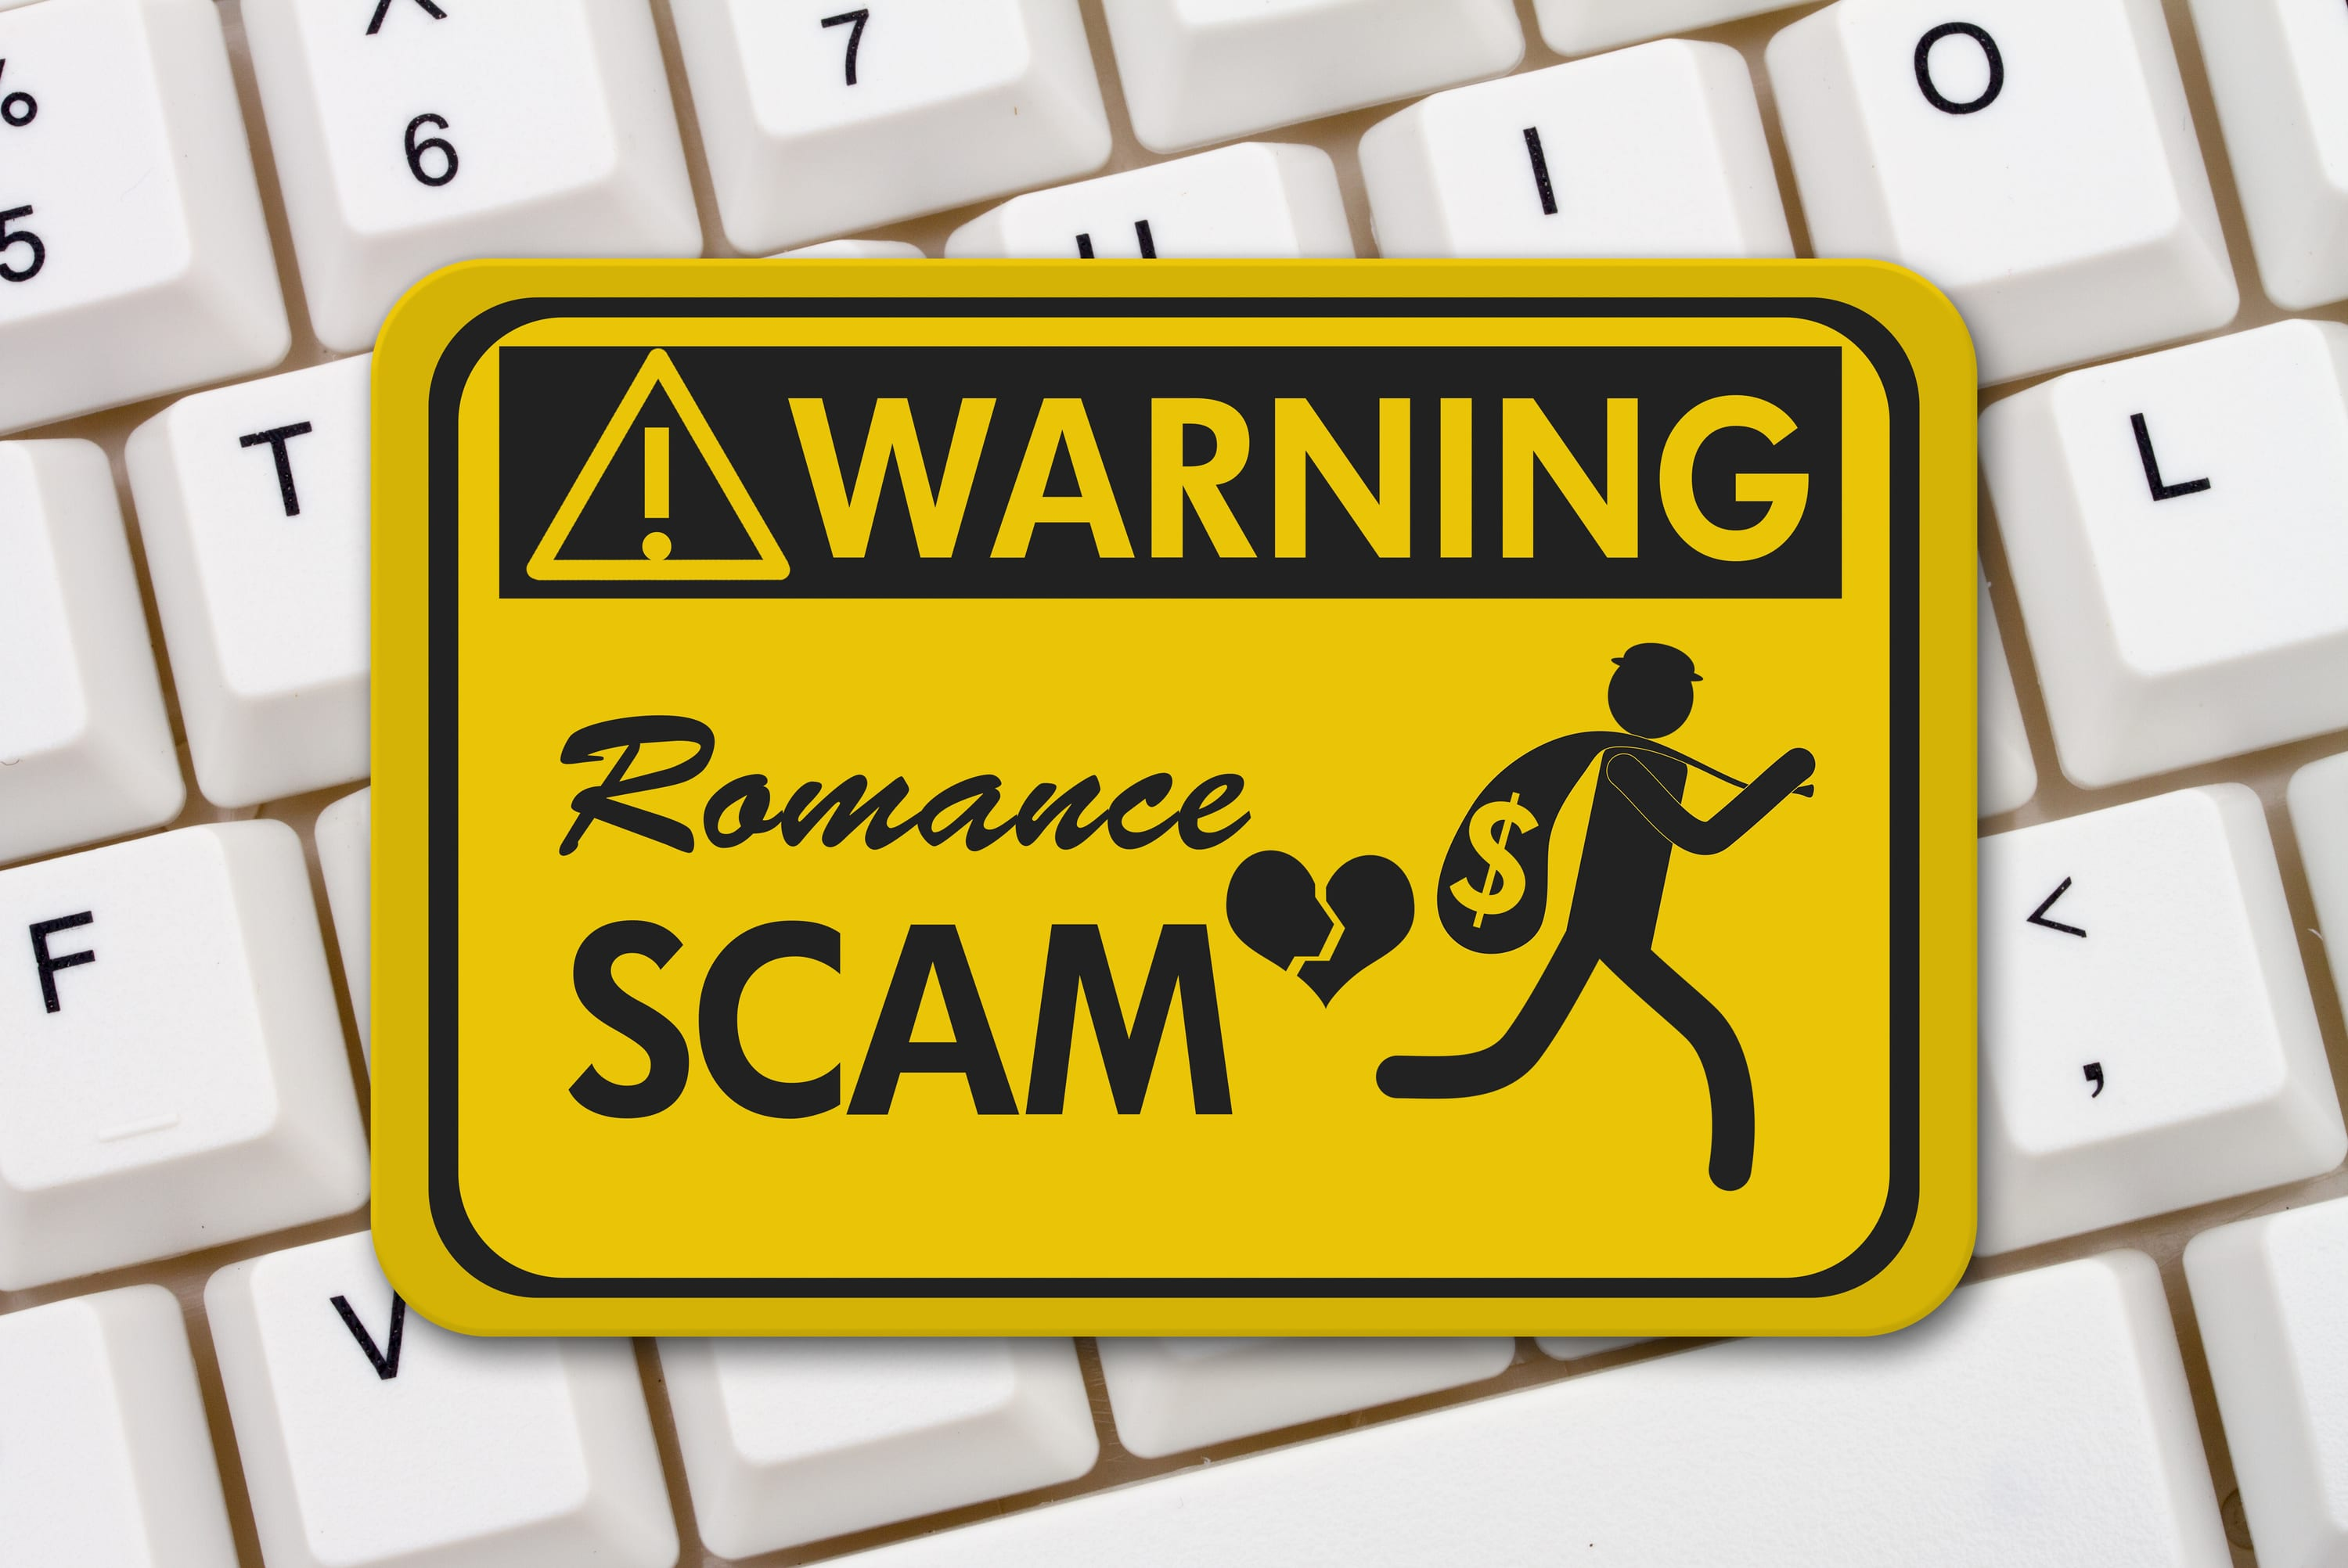 Free dating site scam